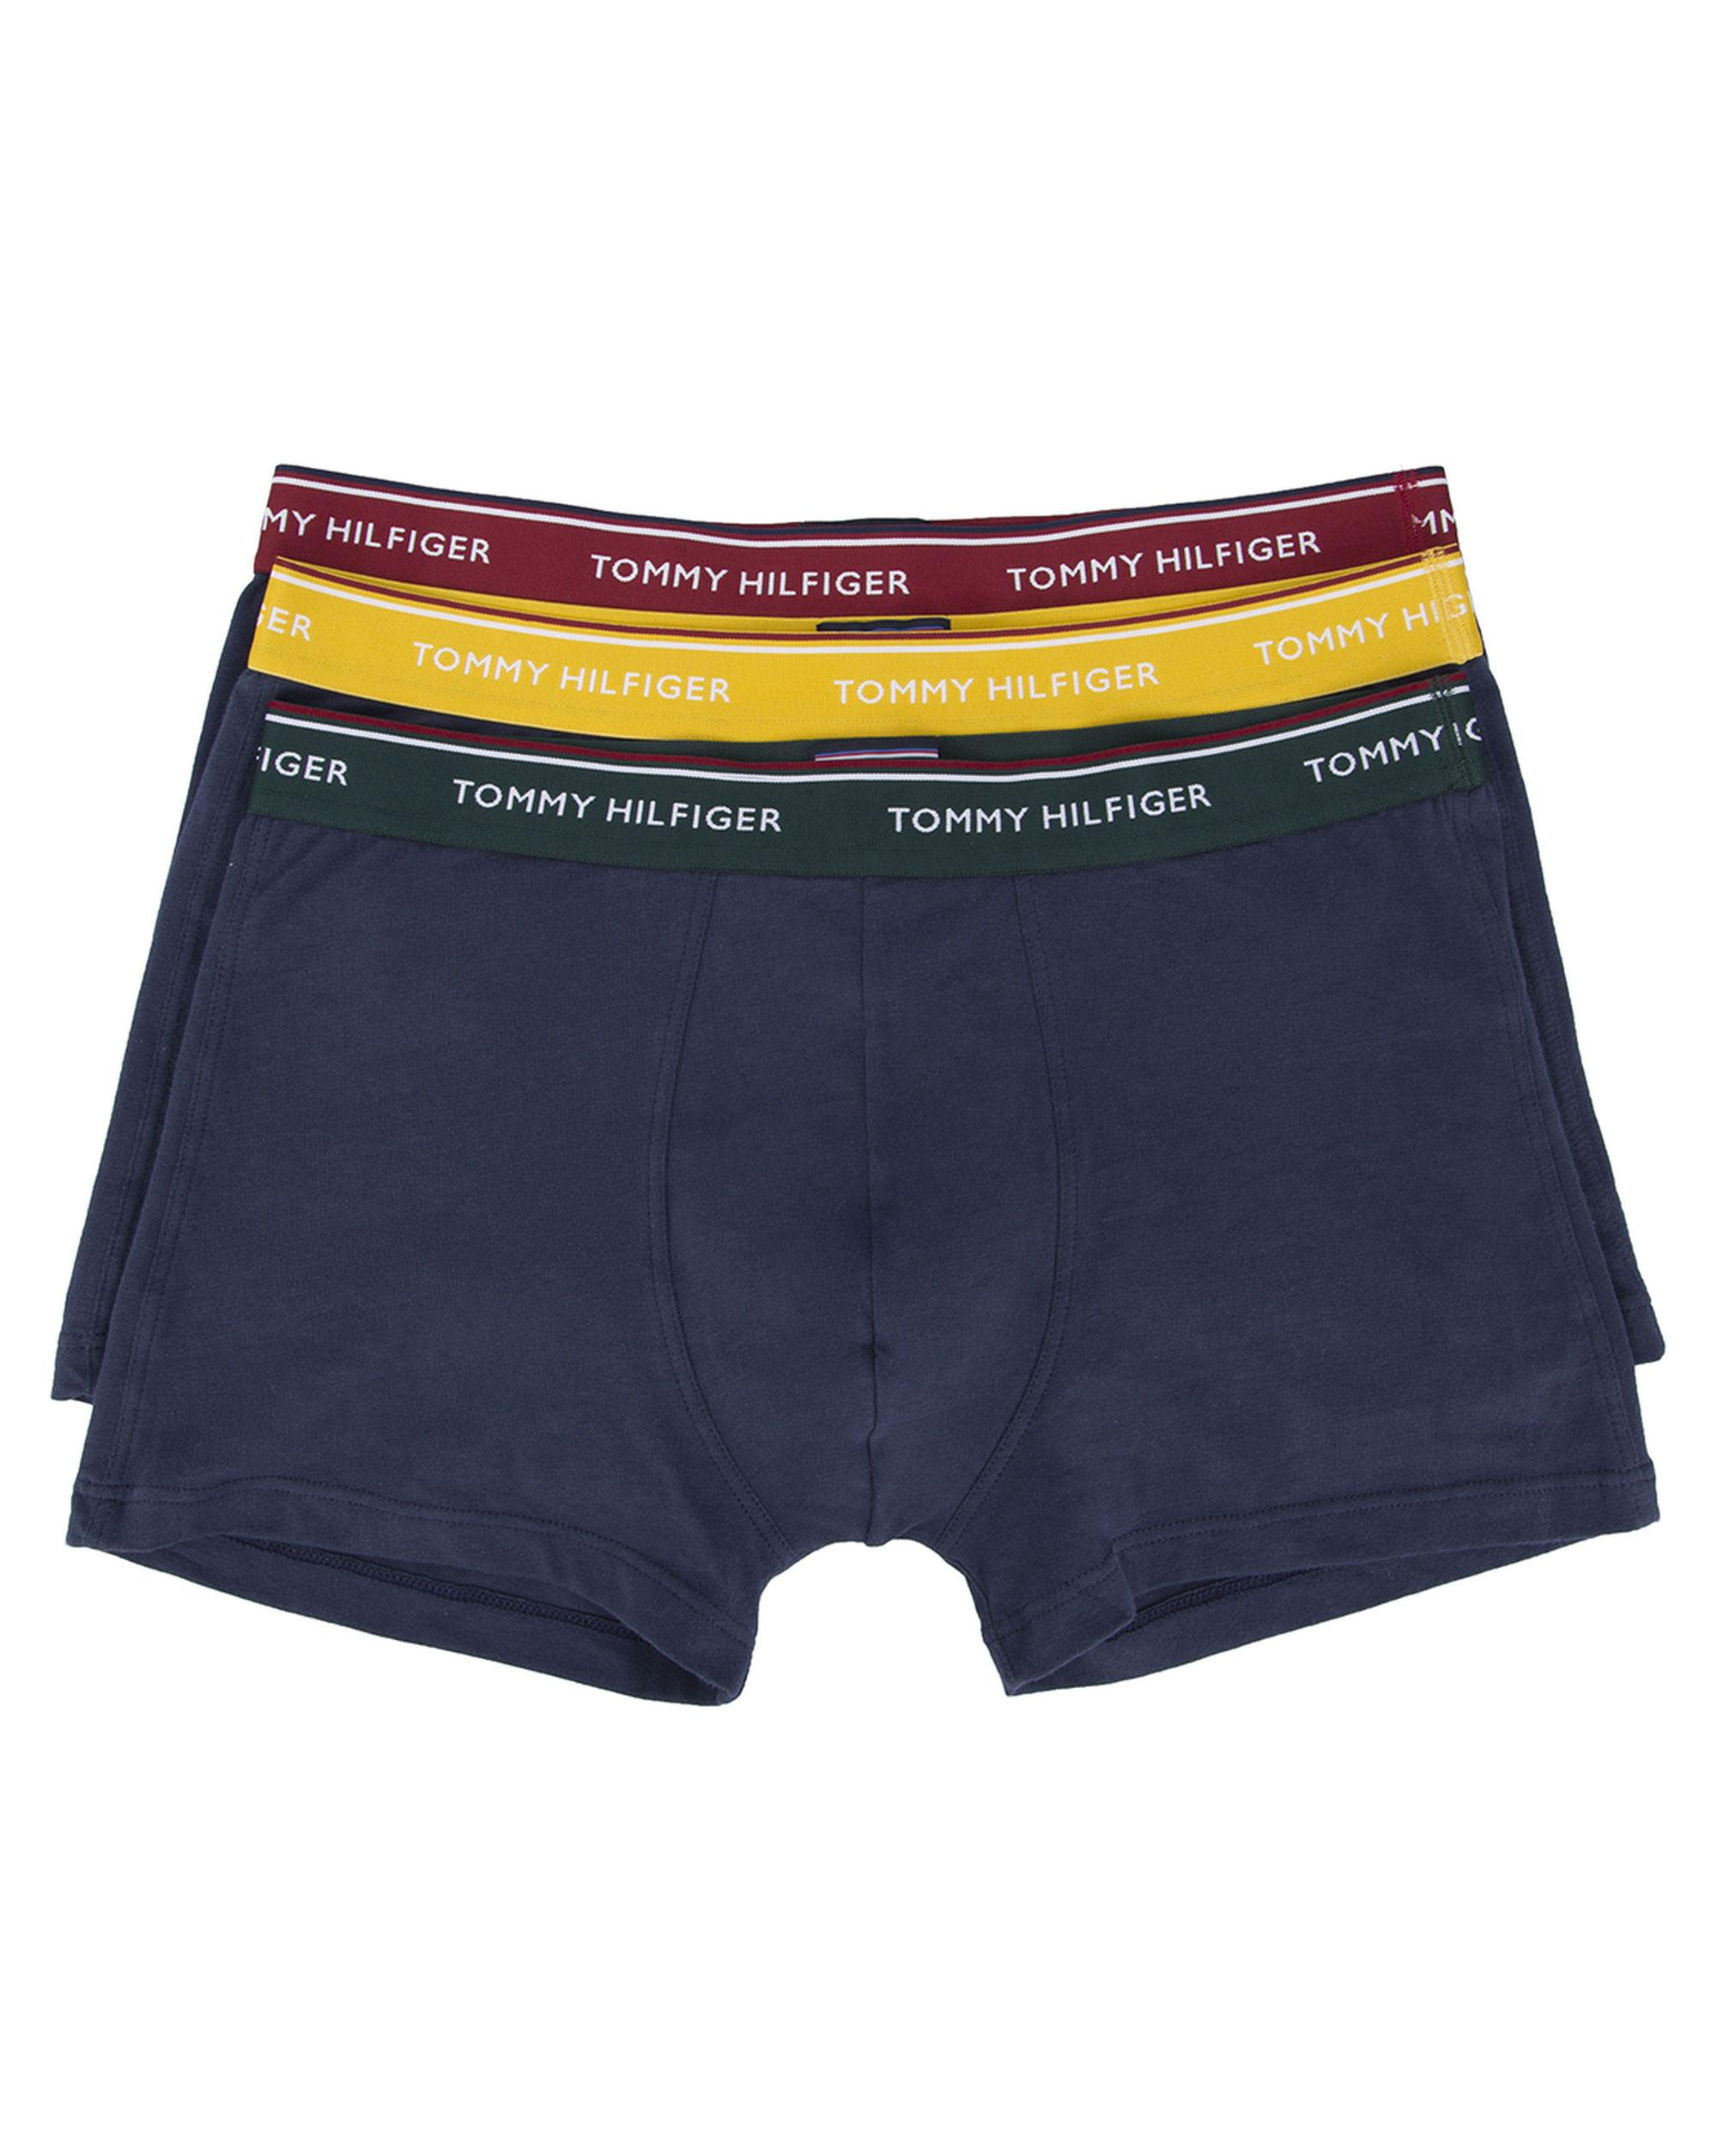 tommy hilfiger 3 pack of navy coloured waistband boxer shorts in blue. Black Bedroom Furniture Sets. Home Design Ideas